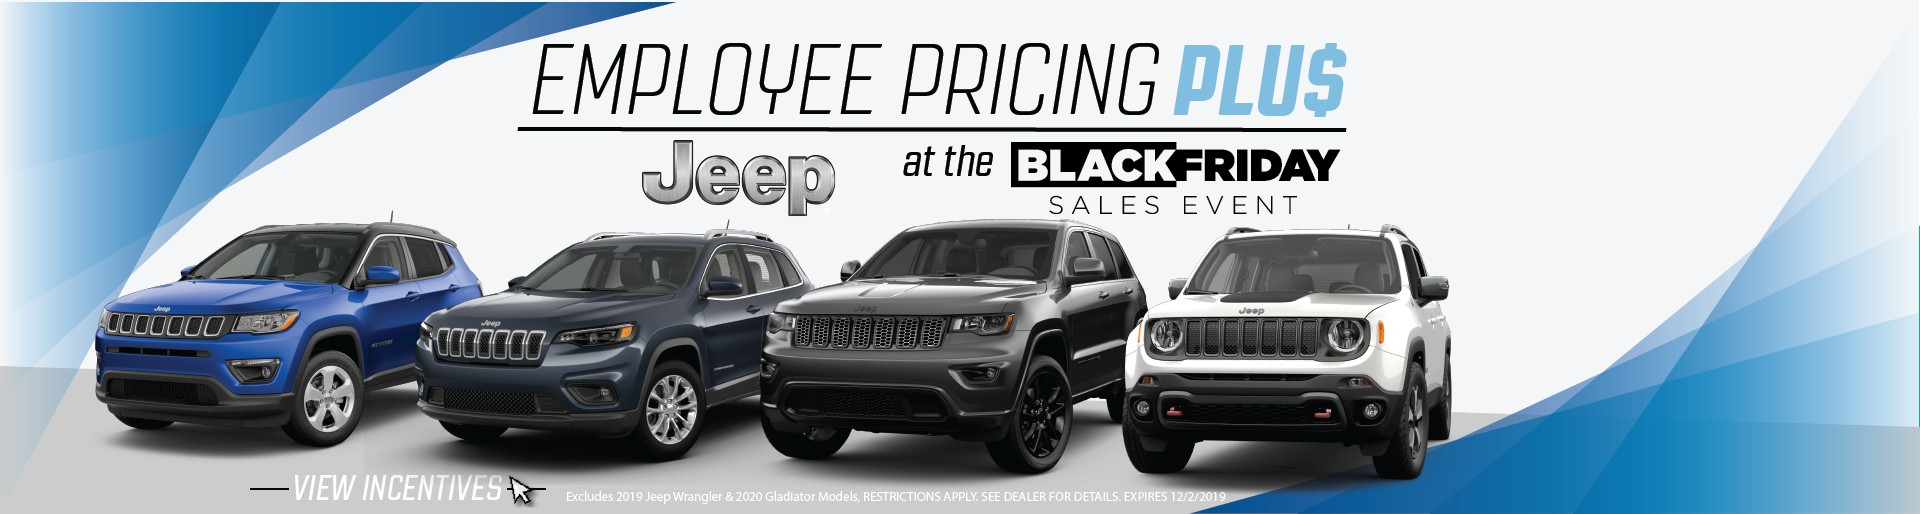 Jeep Employee Pricing Plus Lineup